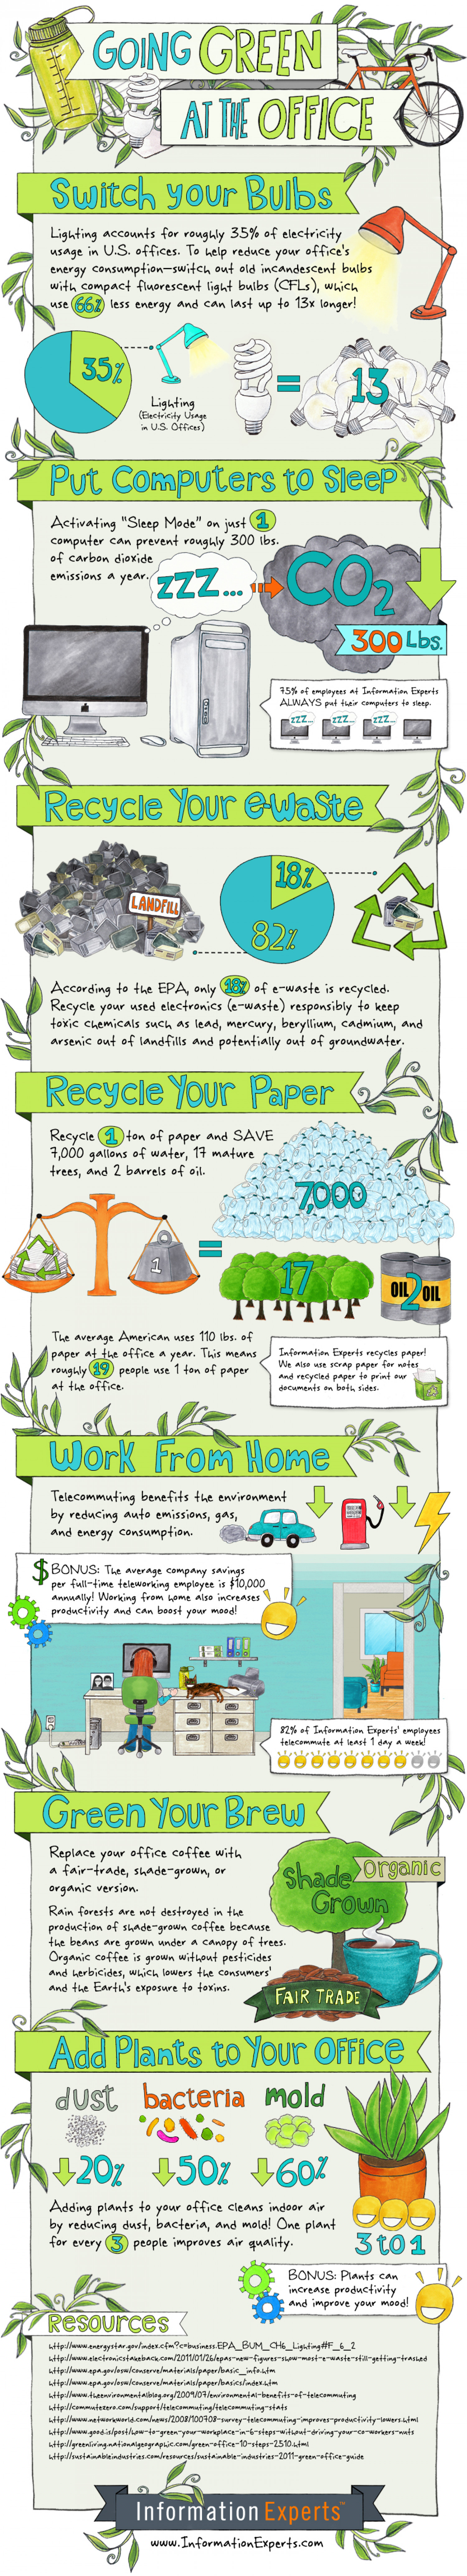 Going Green at the Office Infographic